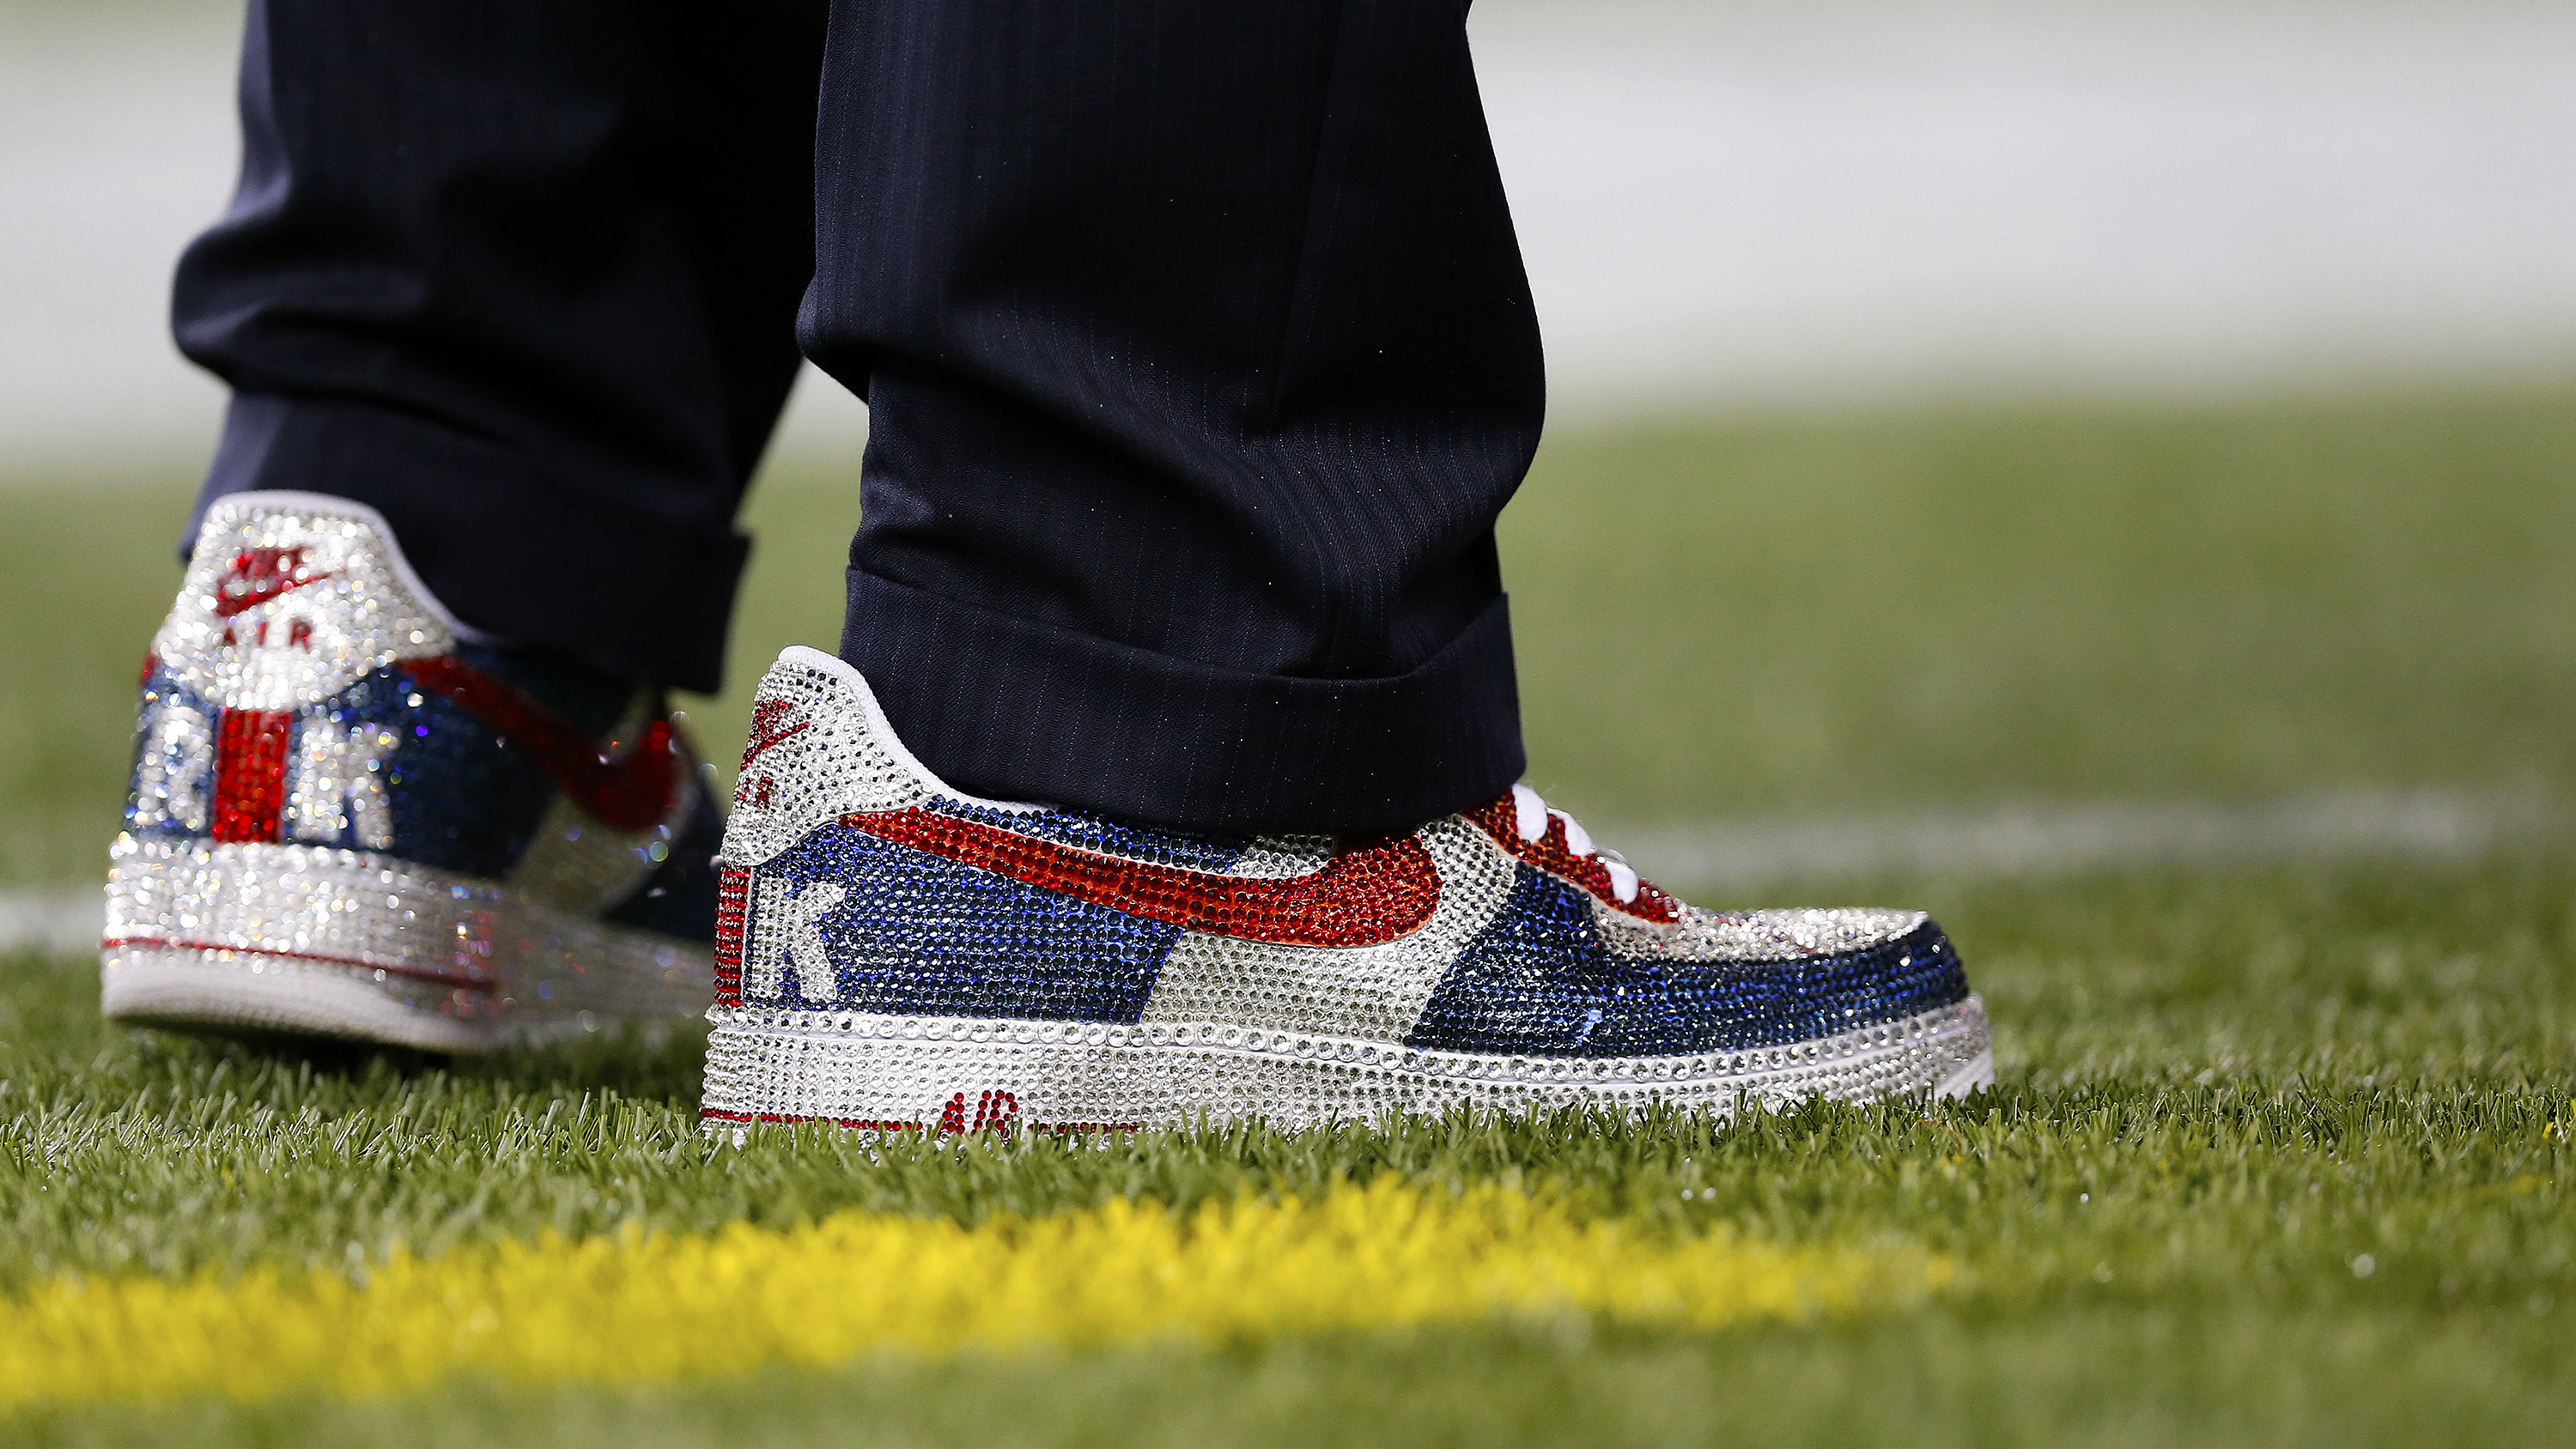 Something new afoot in Pats owner's box